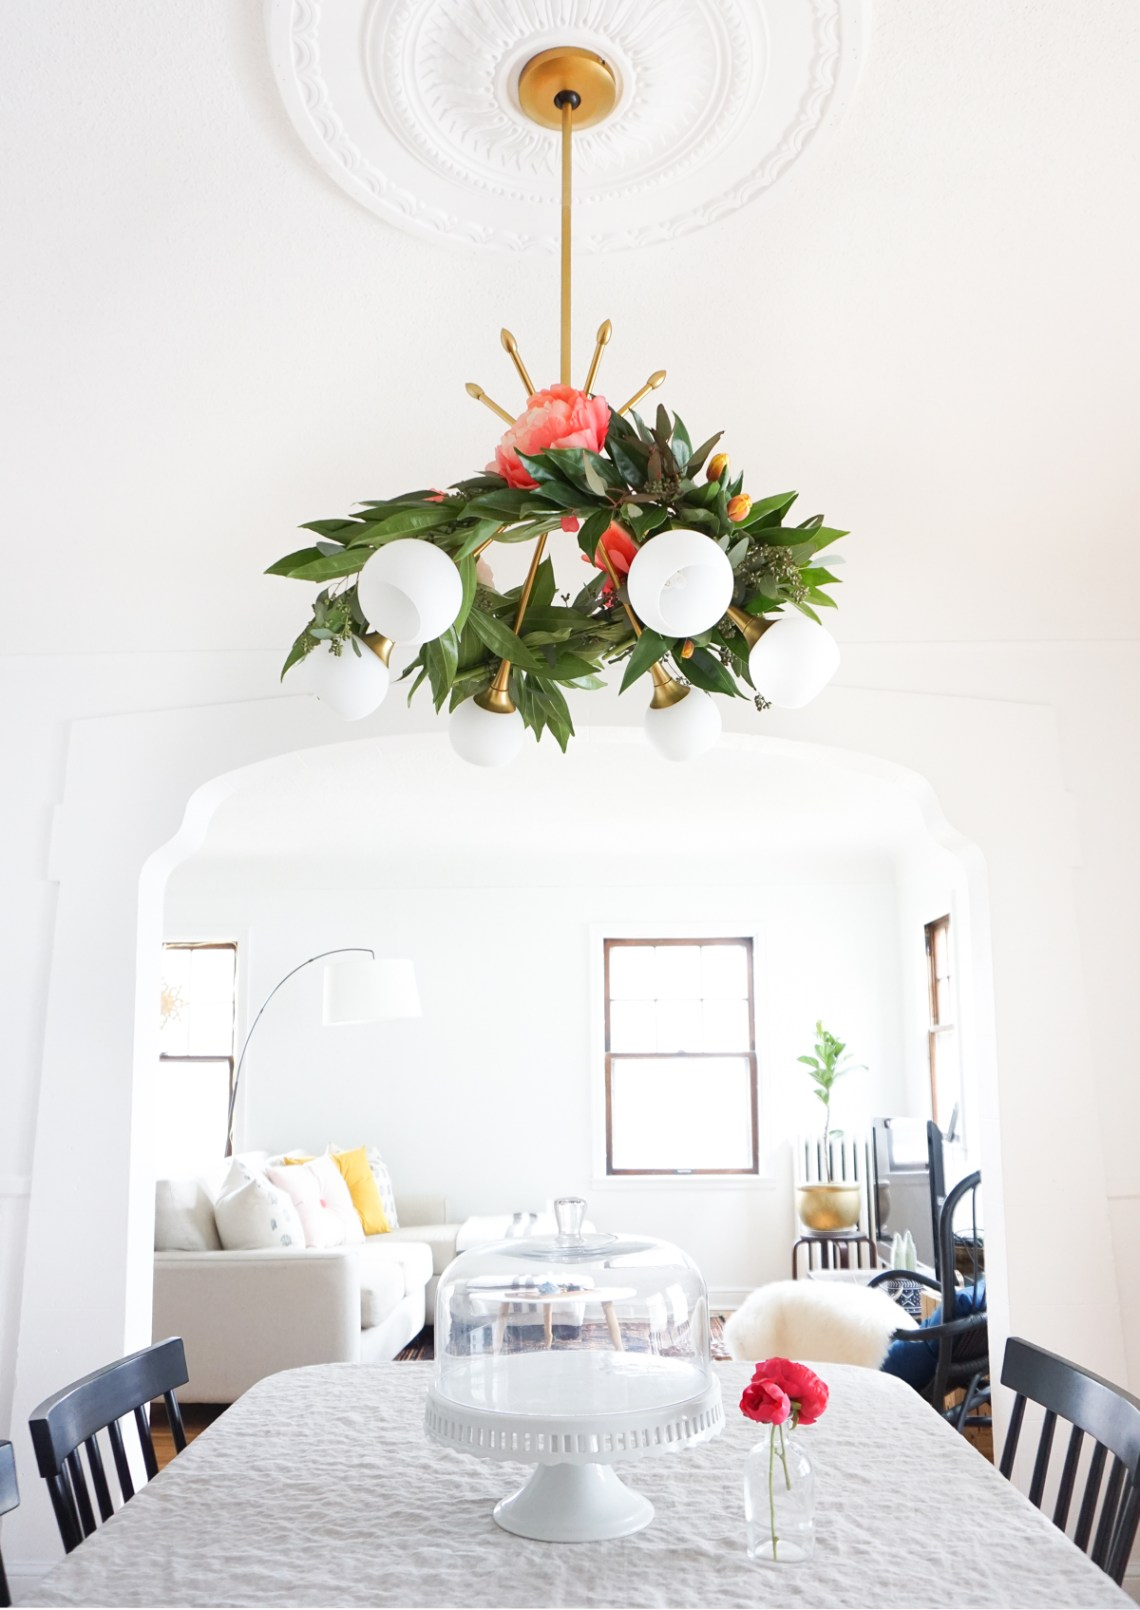 How to create a floral chandelier garland. More ideas on the blog!